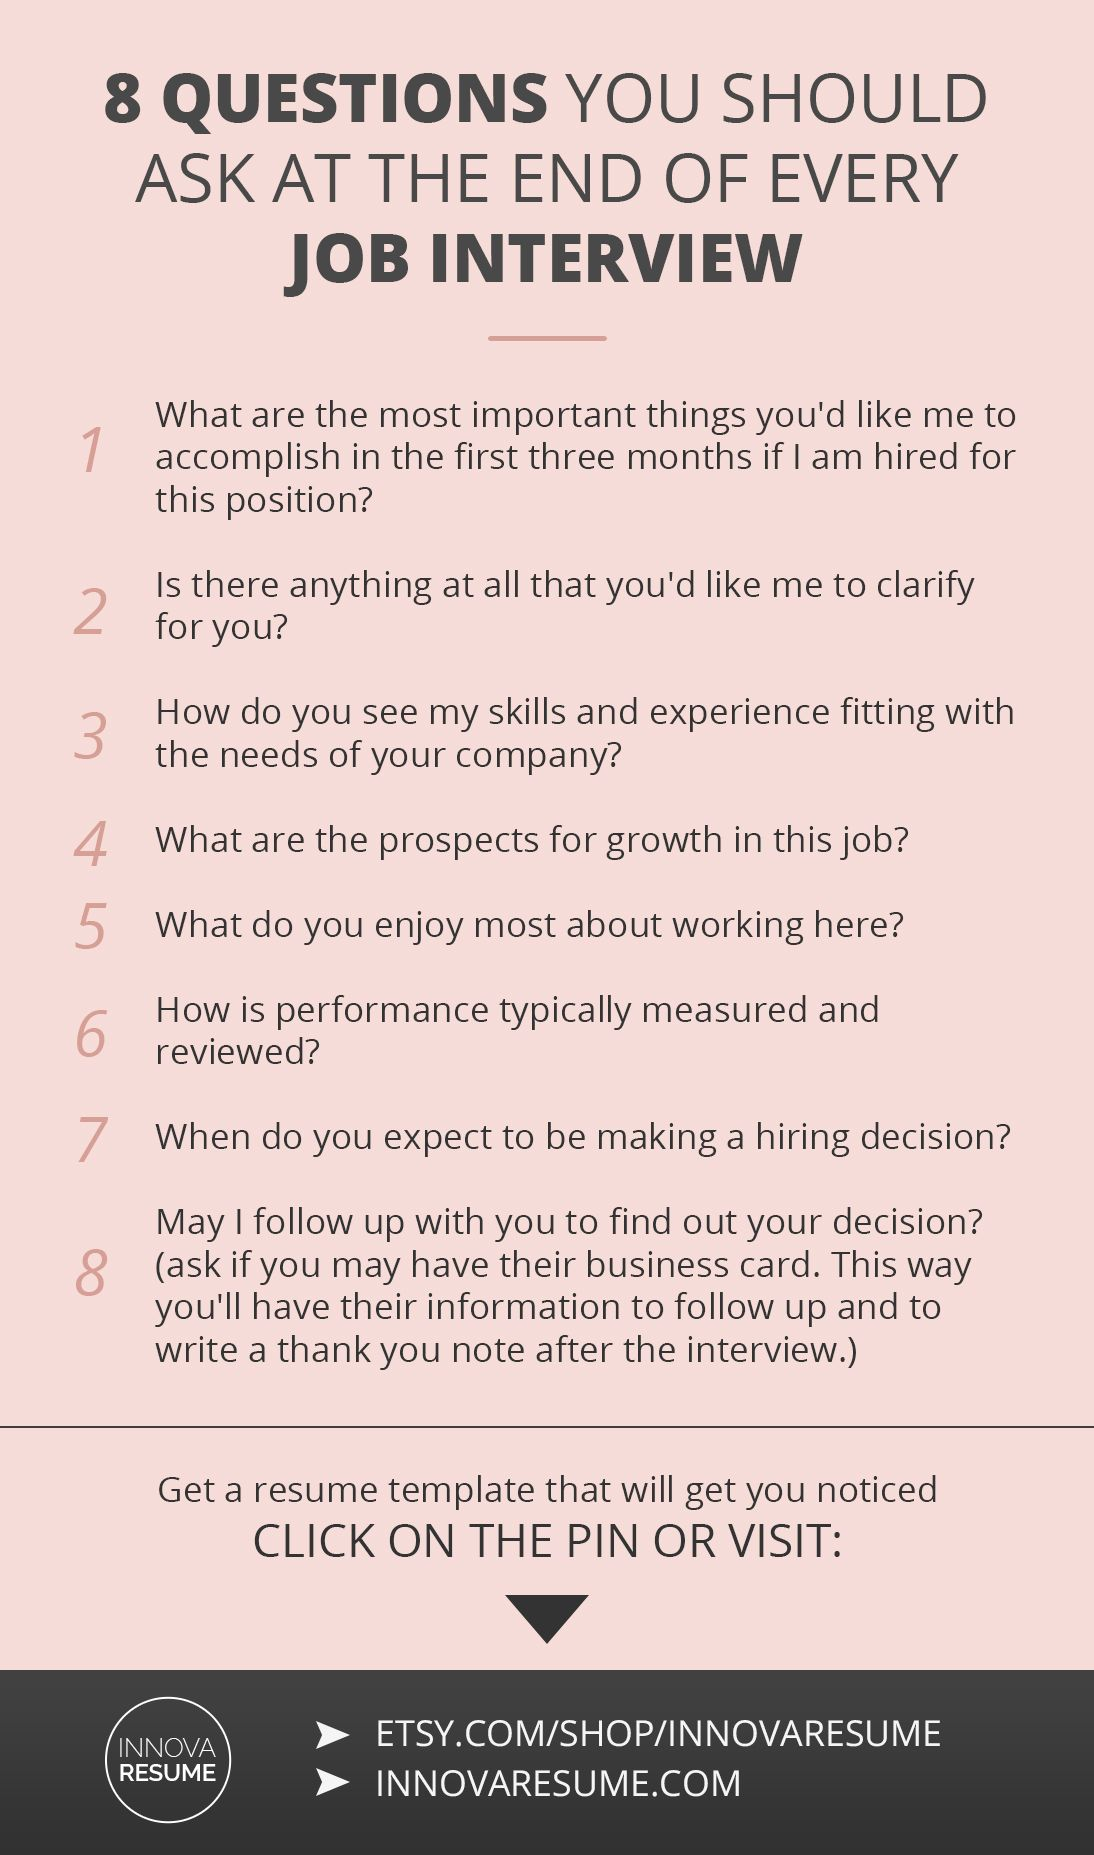 Questions you should ask at the end of every job interview